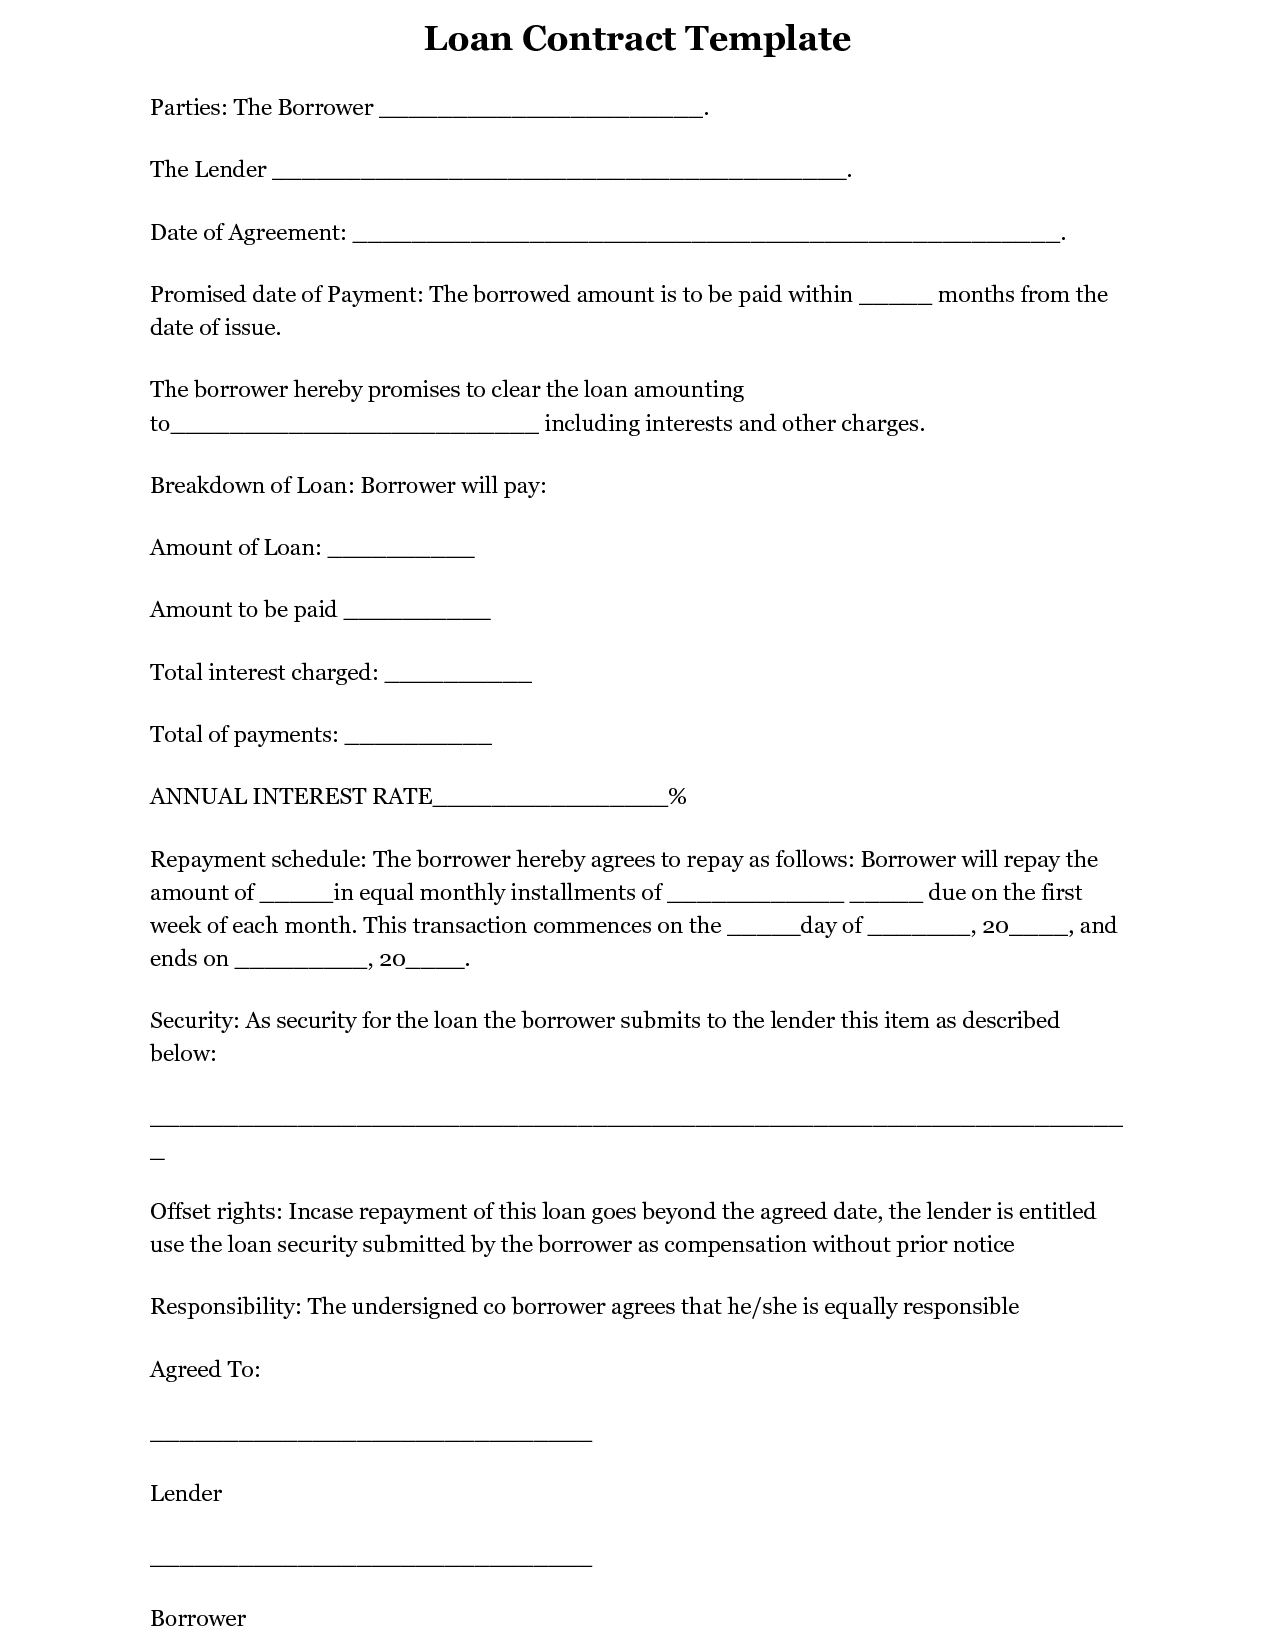 simple interest loan agreement template – Simple Loan Contract